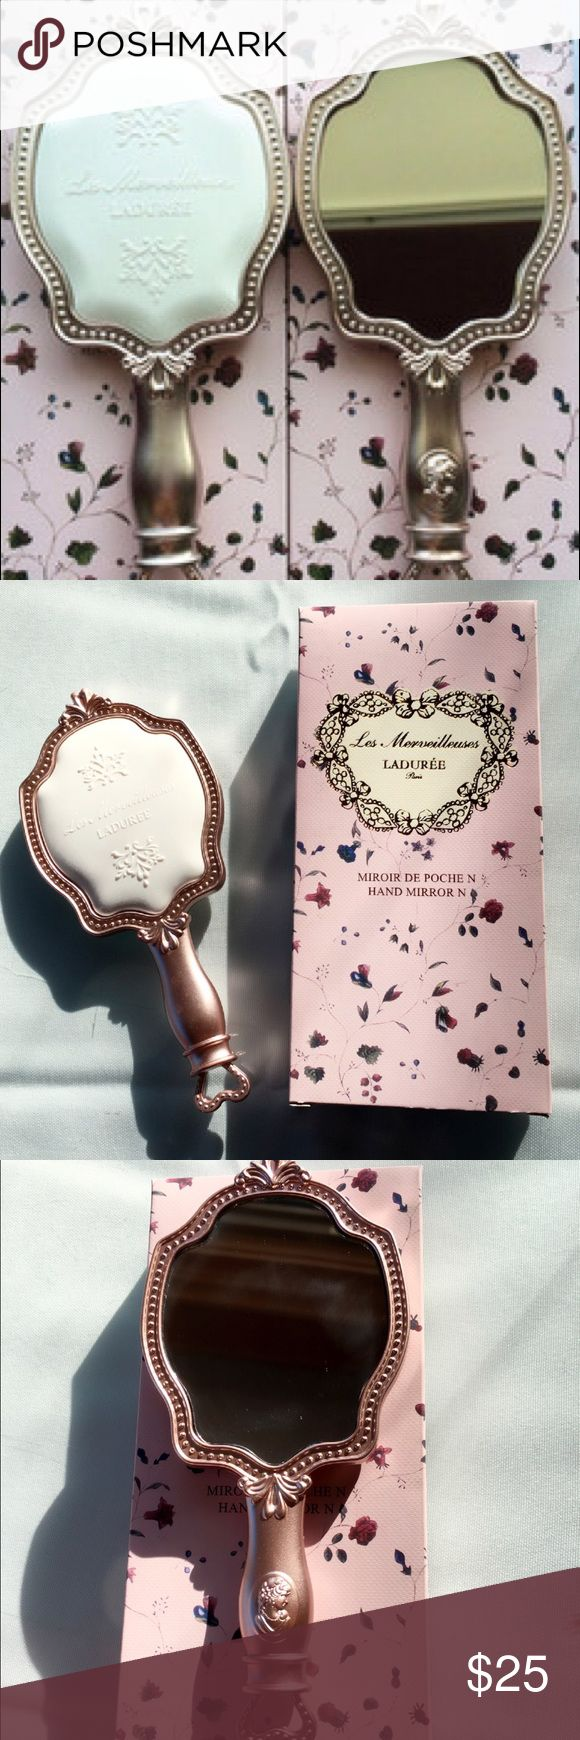 11 Best Lm Laduree Images On Pinterest Makeup Pretty Cheek Brush Les Merveilleuses Hand Mirror New 1 Piece With Original Box Ready To Ship Made In Japan Brushes Tools